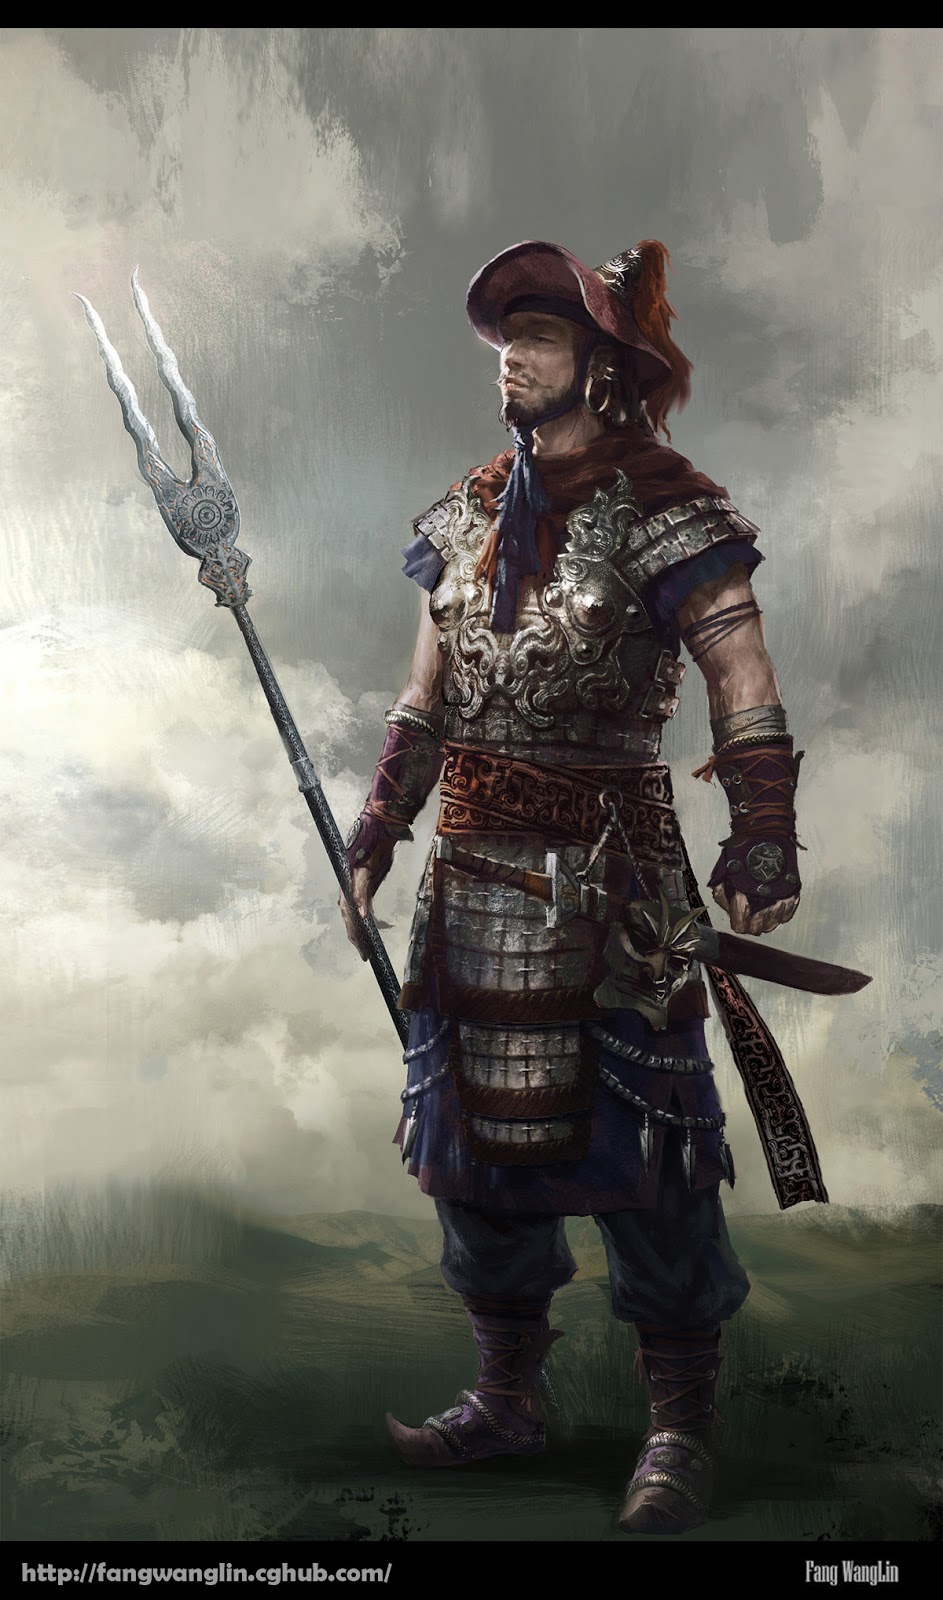 Warriors in art: Chinese ancient warrior by Wanglin Fang